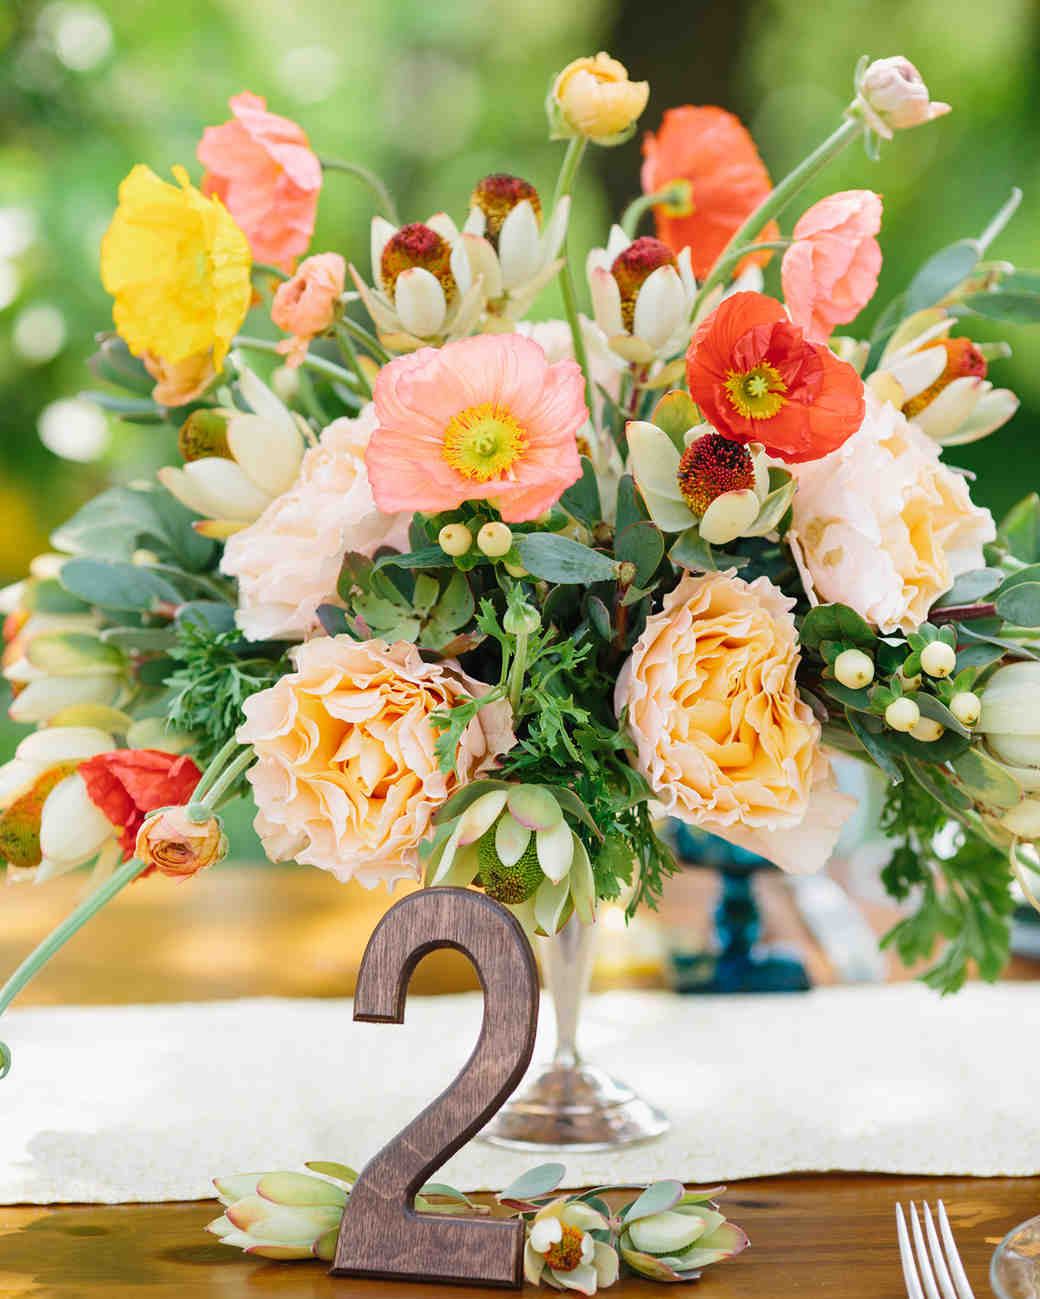 15 Outdoor Wedding Ideas That Are Totally Genius: Stunning Summer Centerpieces Using In-Season Flowers